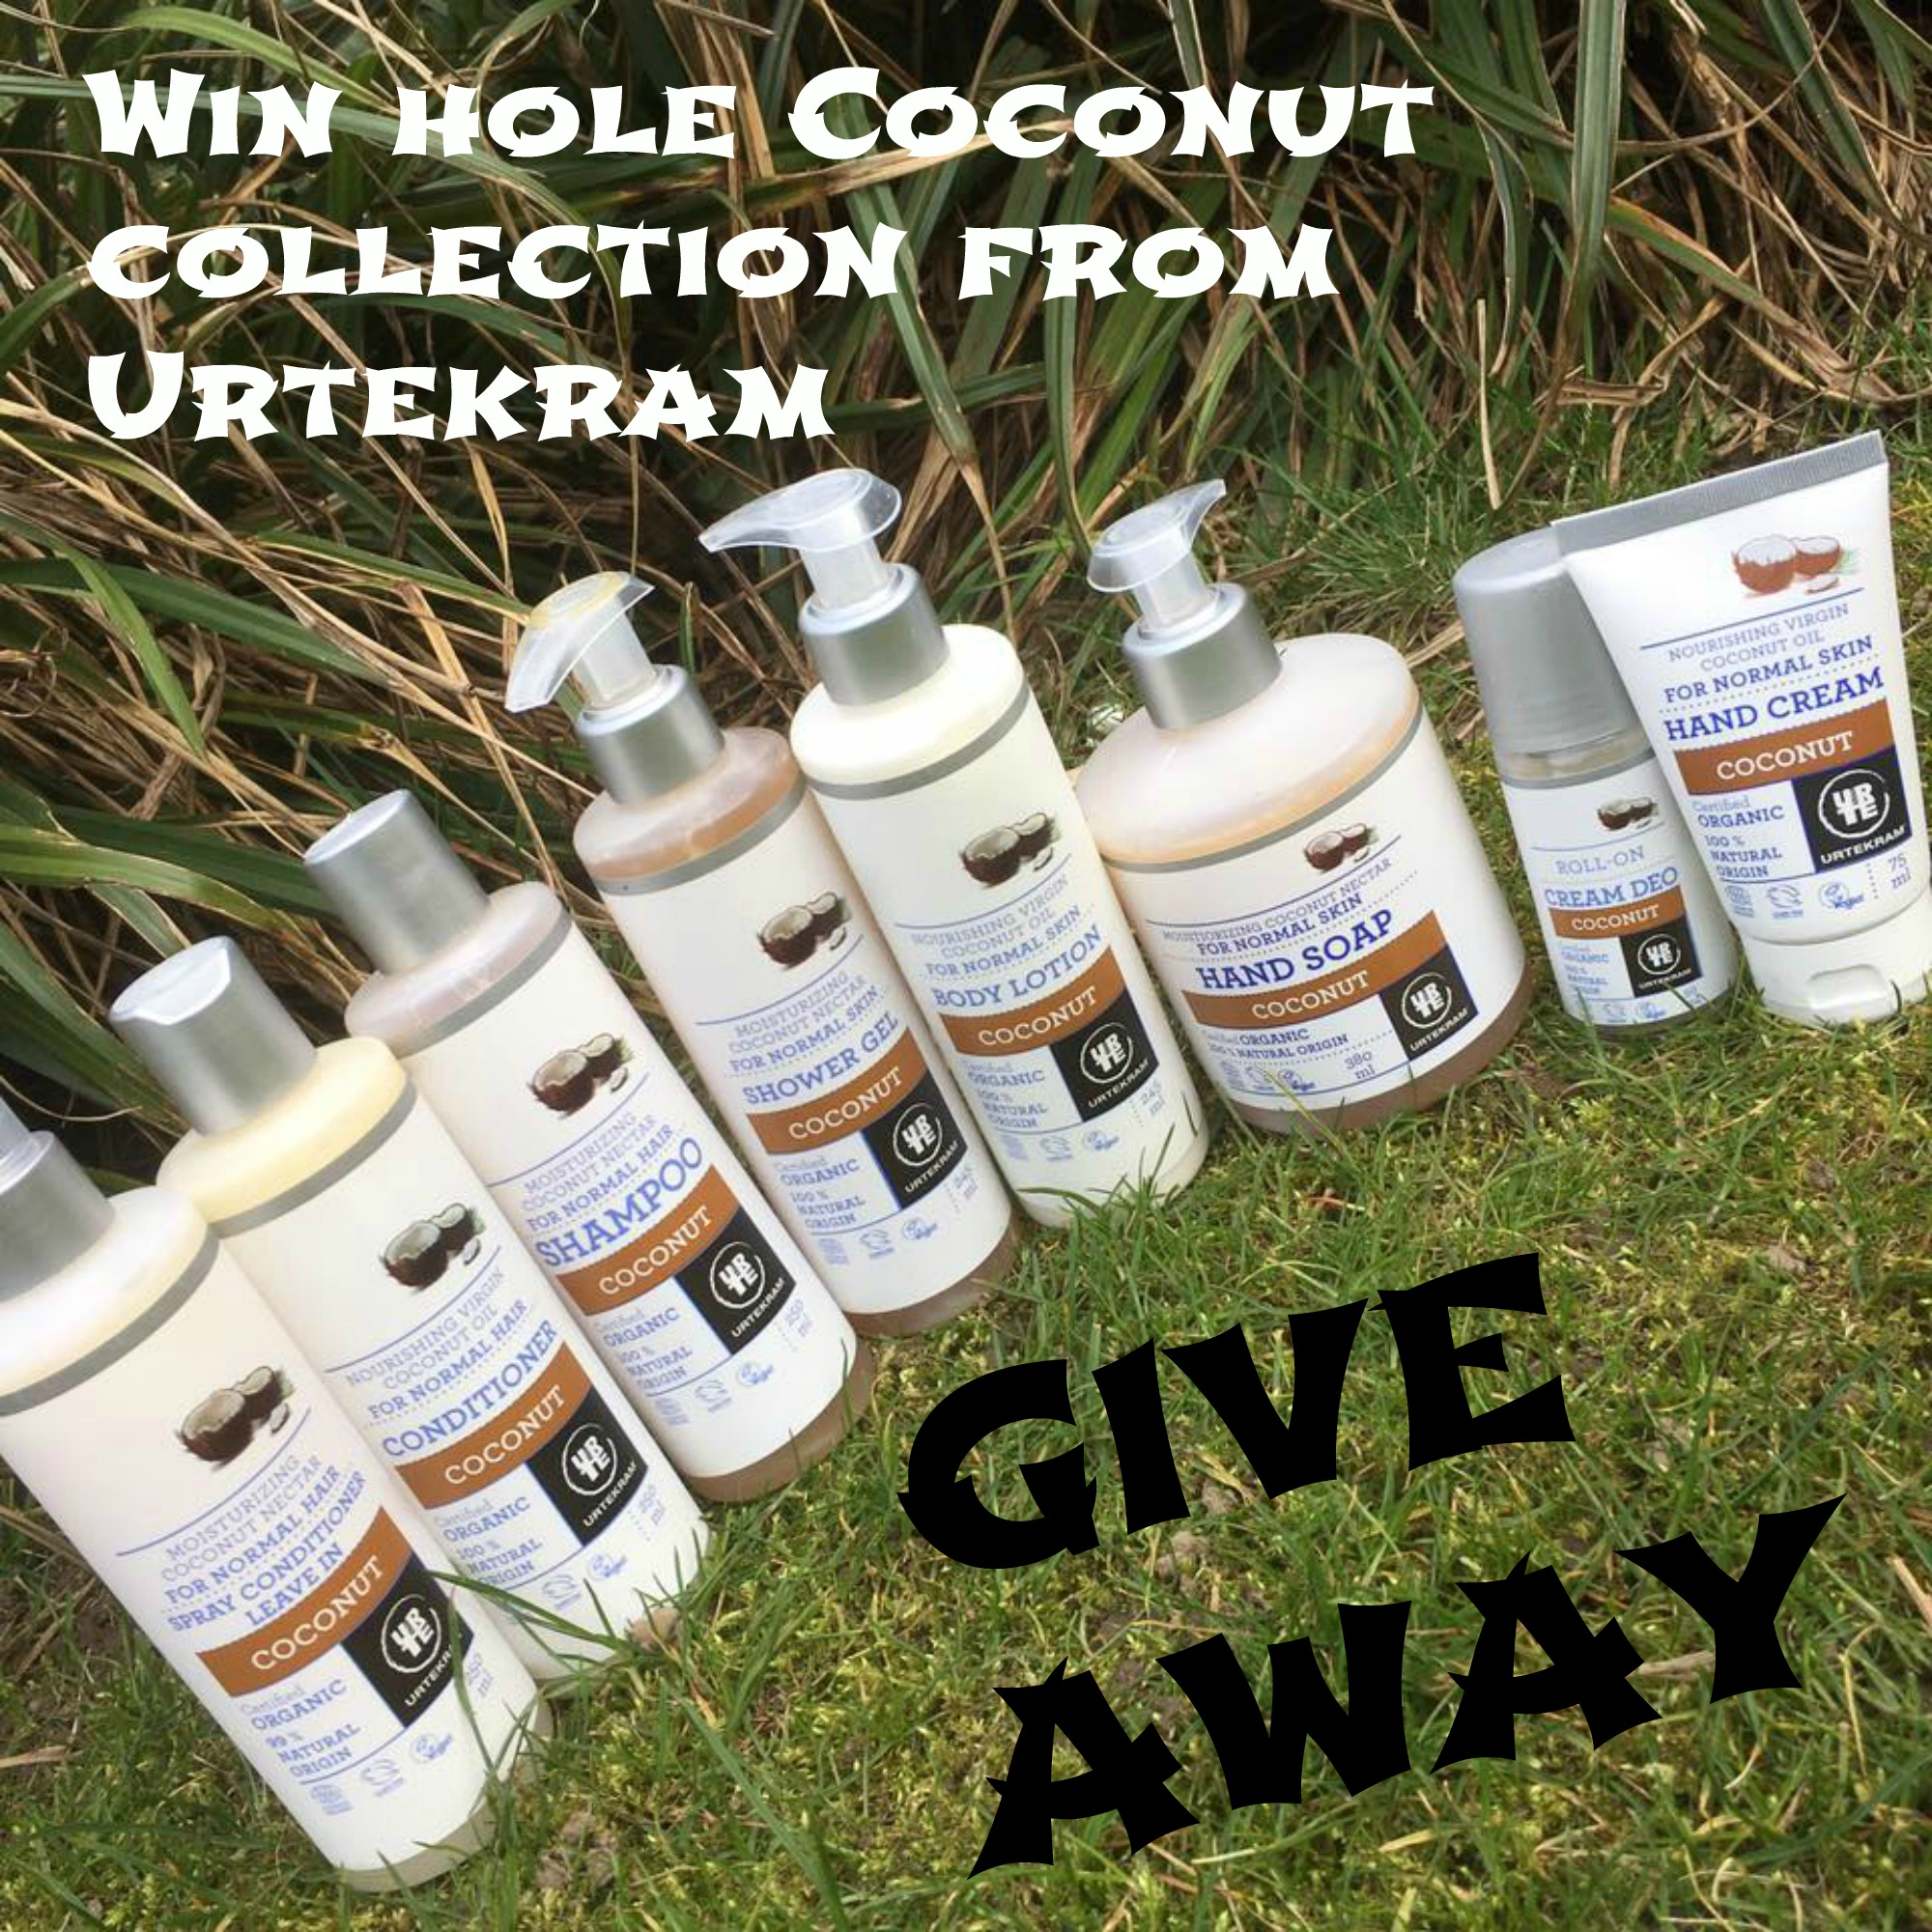 Coconut urtekram give away